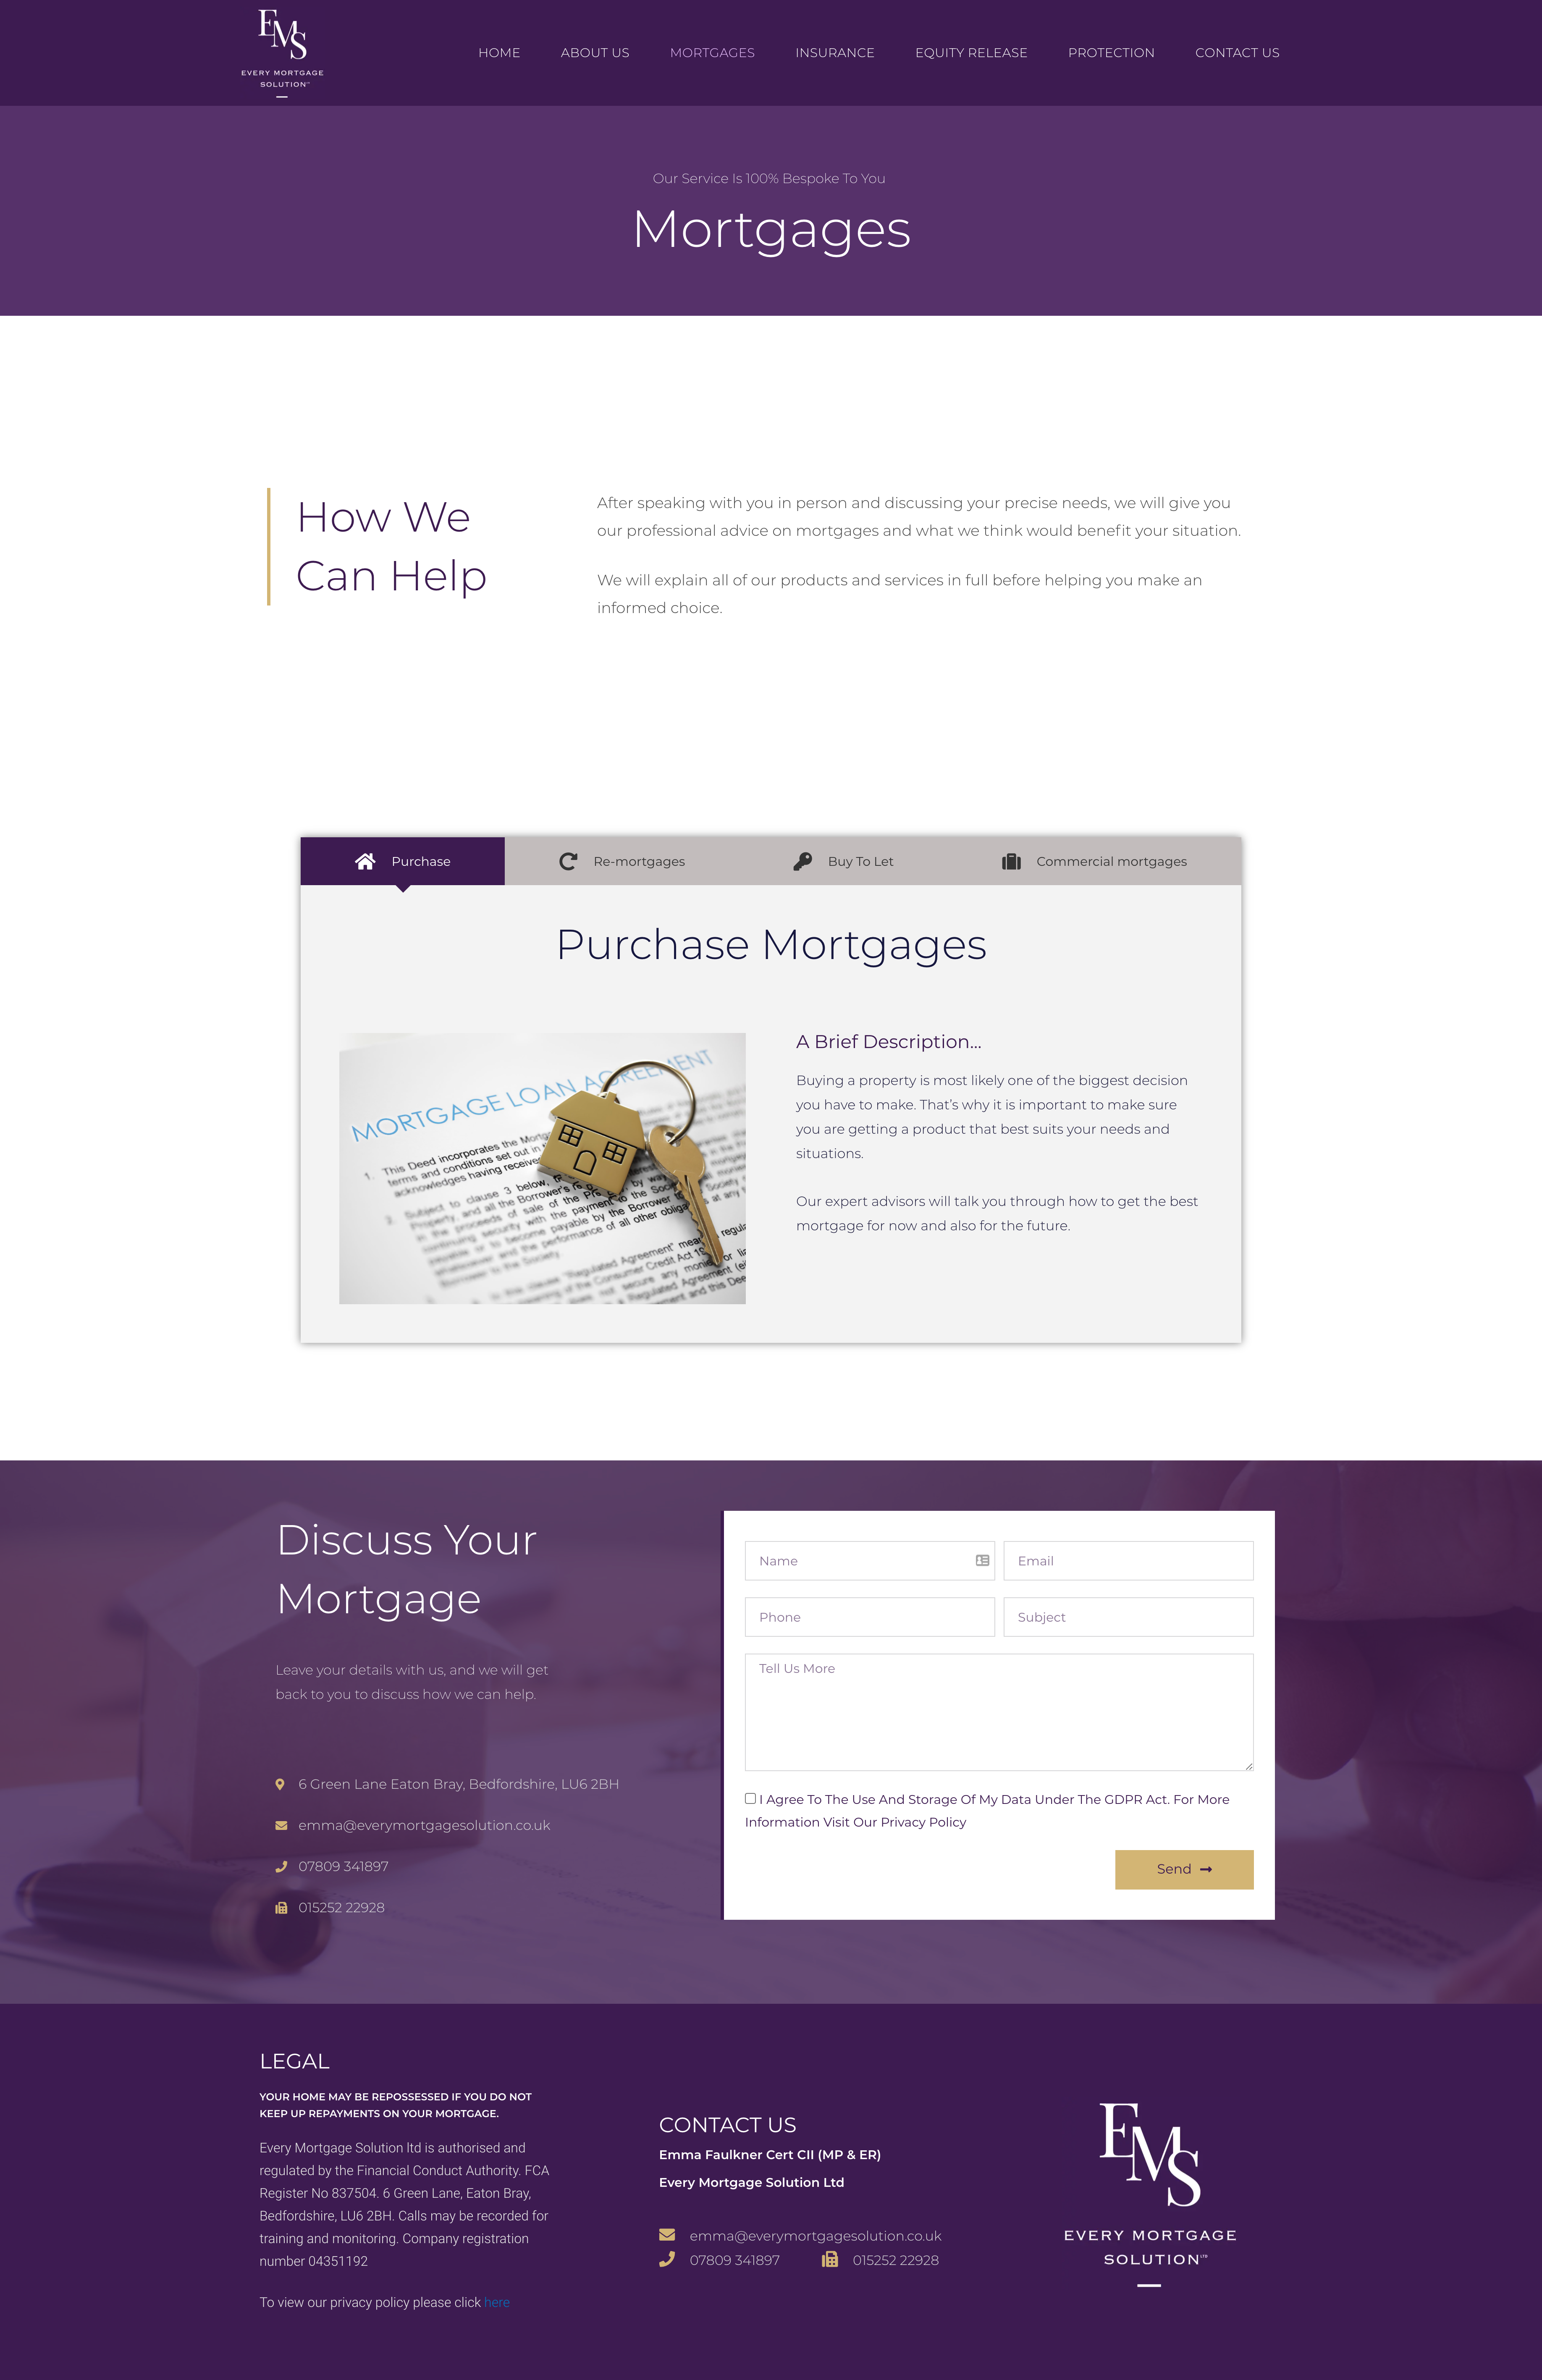 Every Mortgage Solution Website